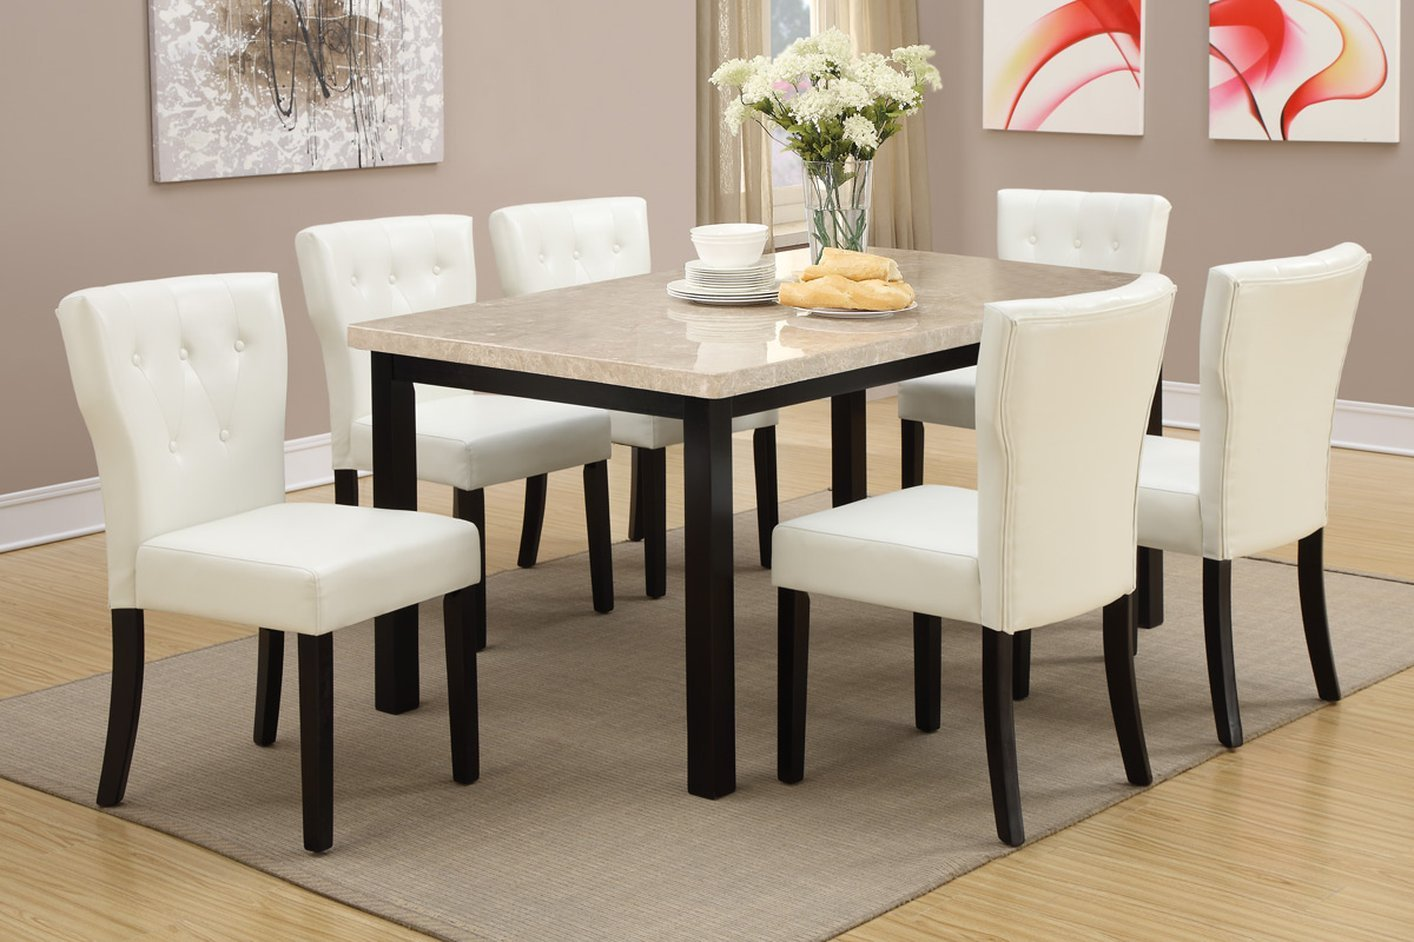 Brown Marble Dining Table - Steal-A-Sofa Furniture Outlet Los ...